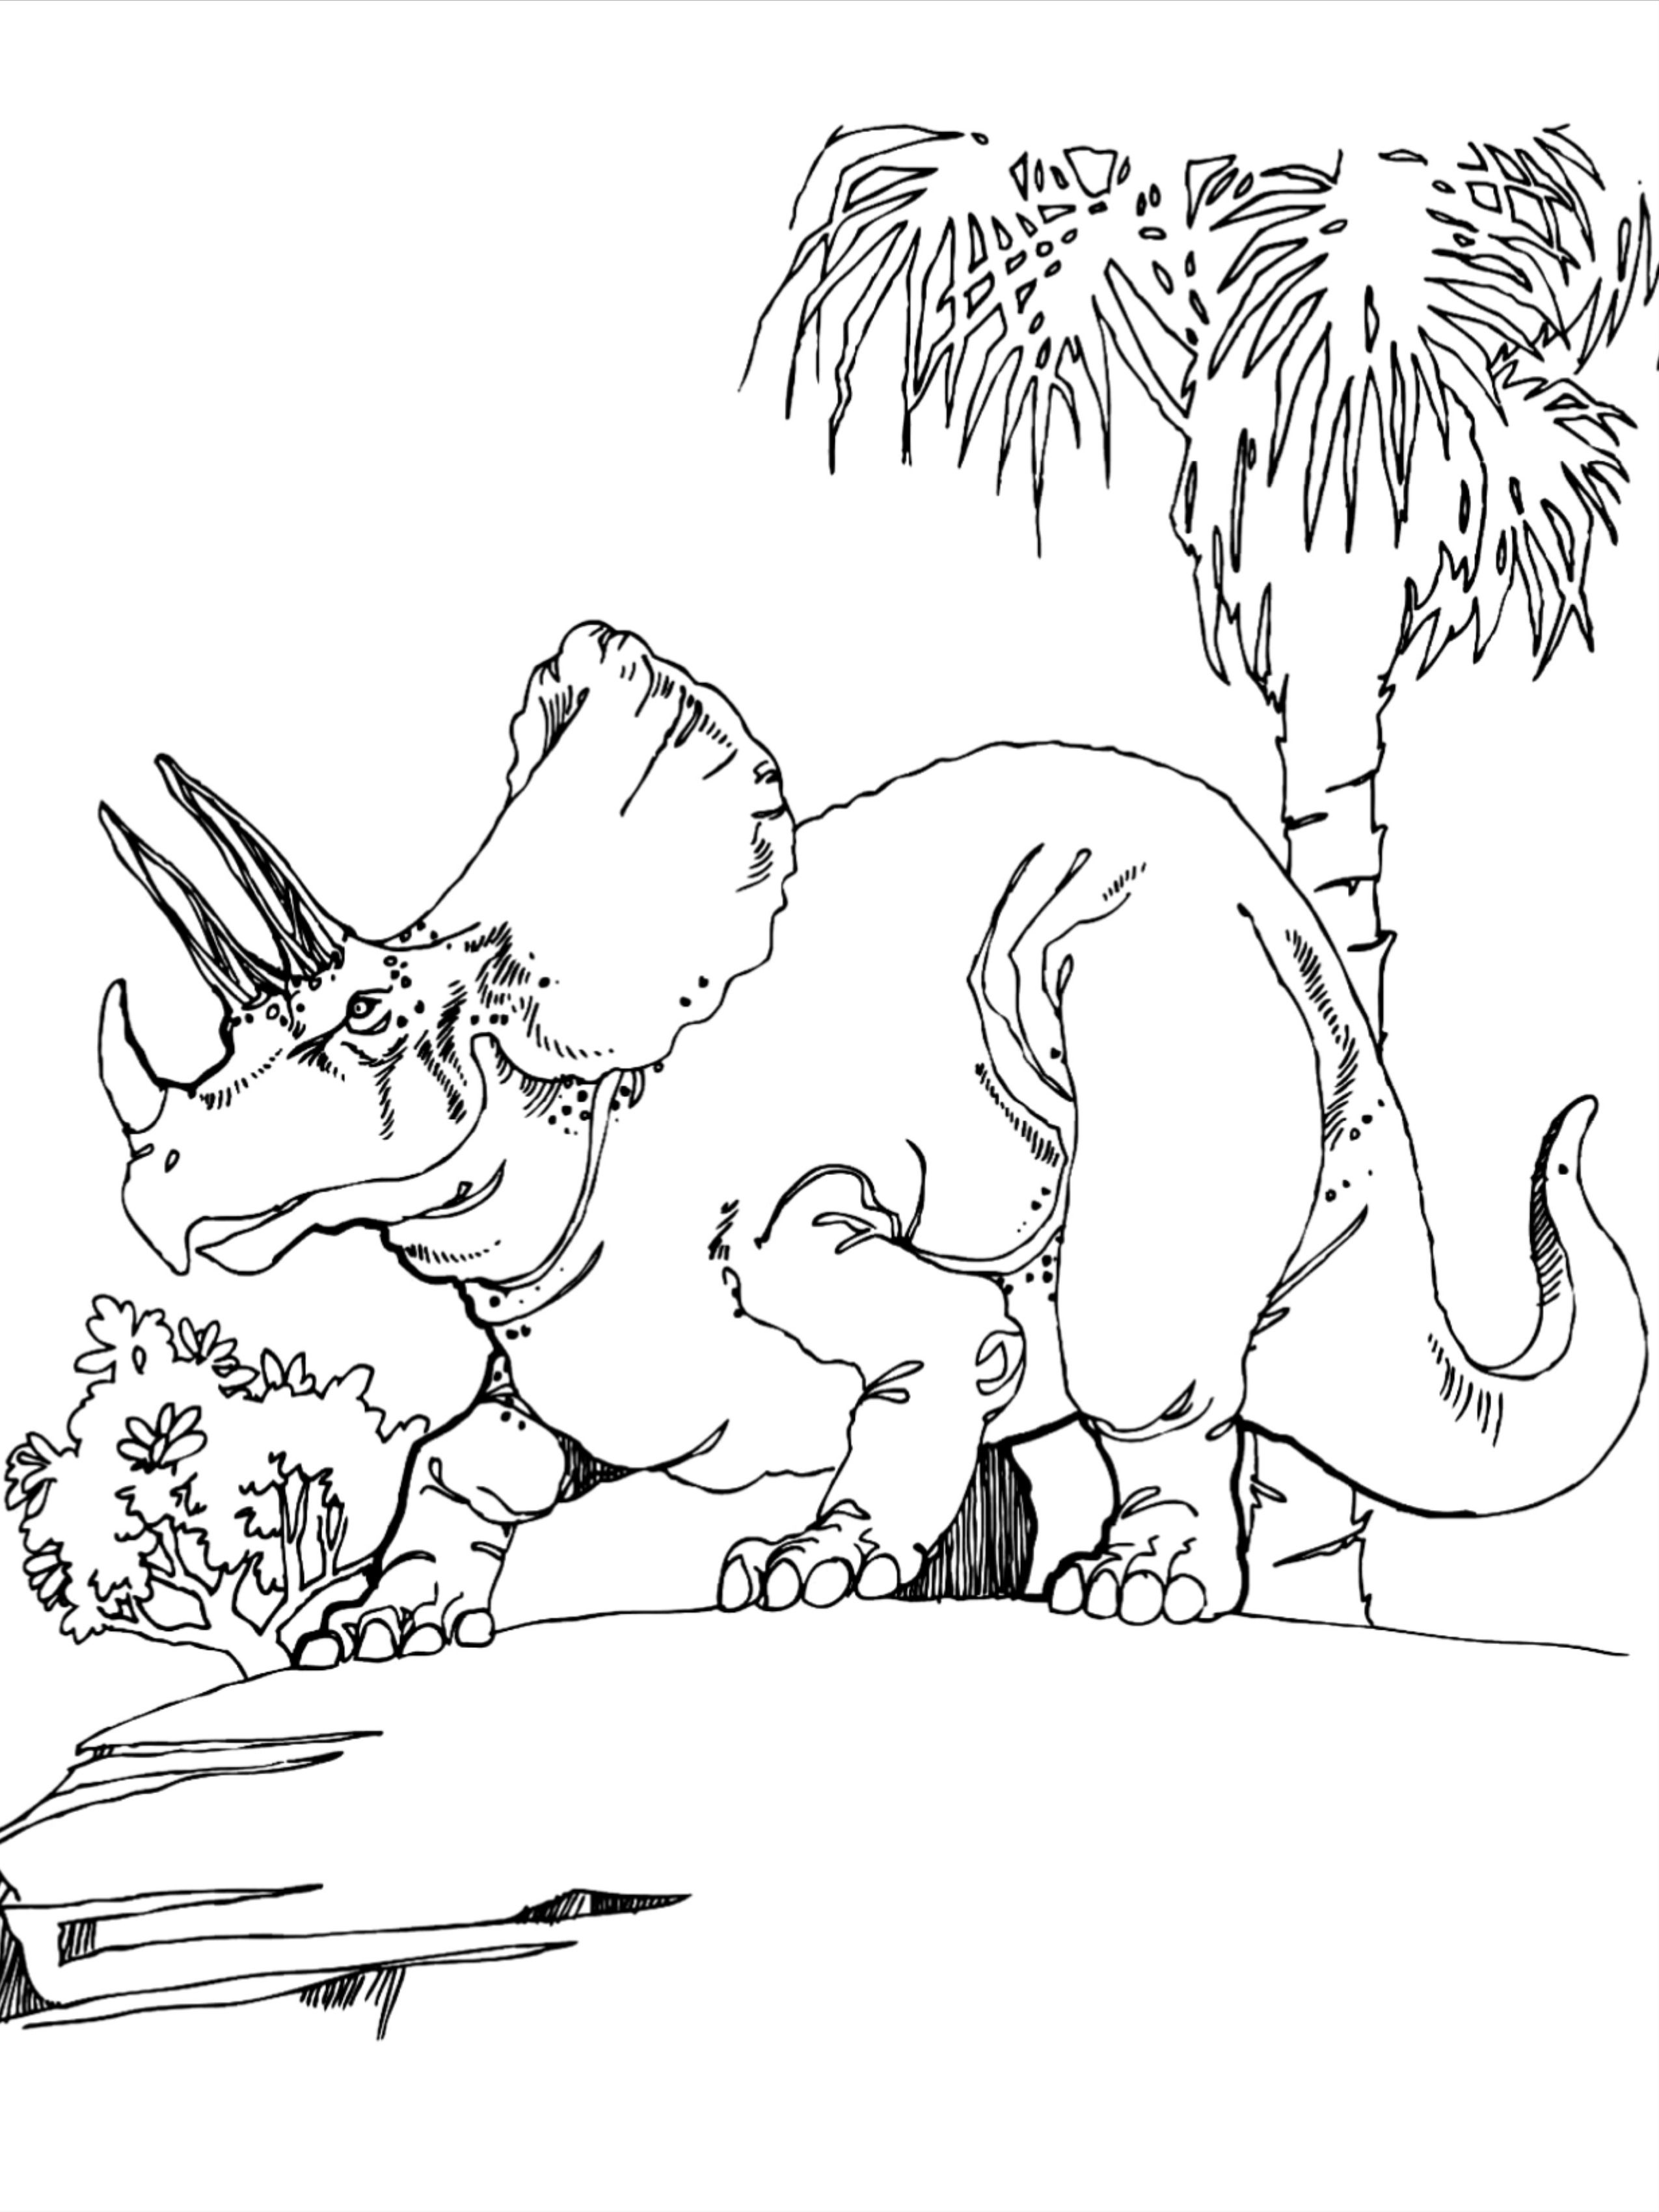 100 Dinosaur Coloring Pages For Kids Malvorlage Dinosaurier Dinosaurier Zum Ausmalen Malvorlagen Tiere